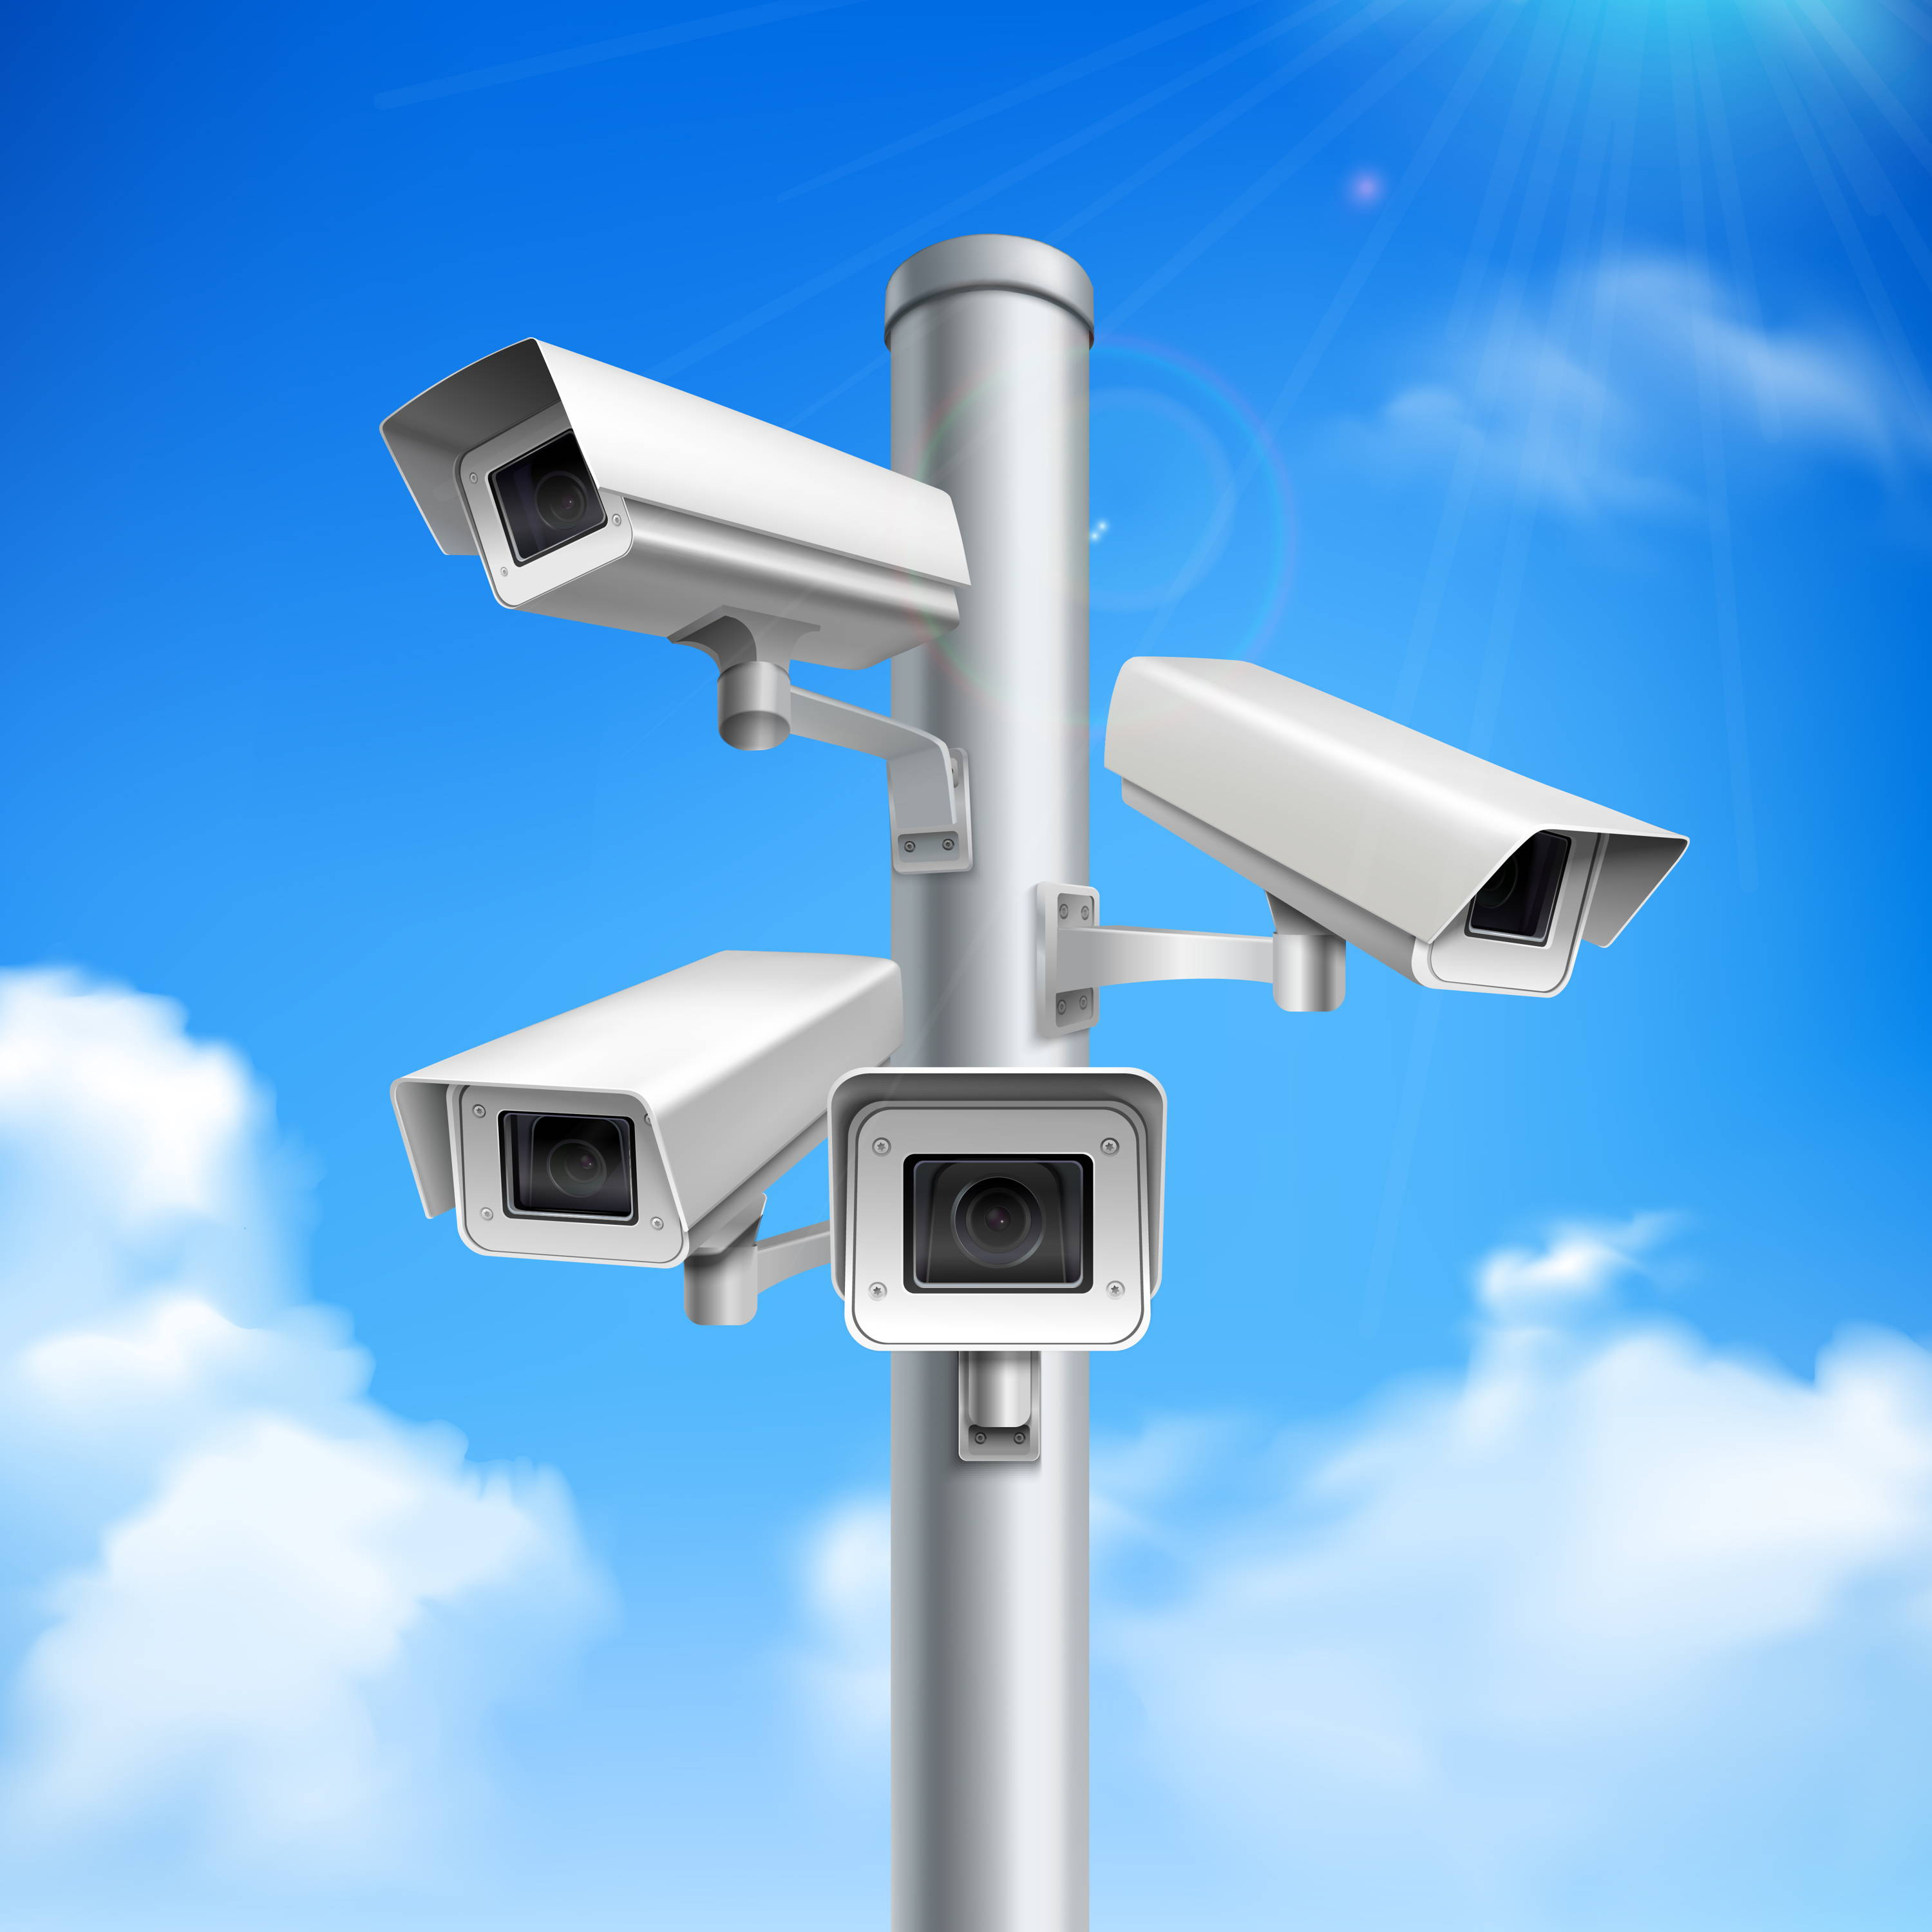 Wired Vs Wireless Security Cameras All You Need To Know A1 Security Cameras